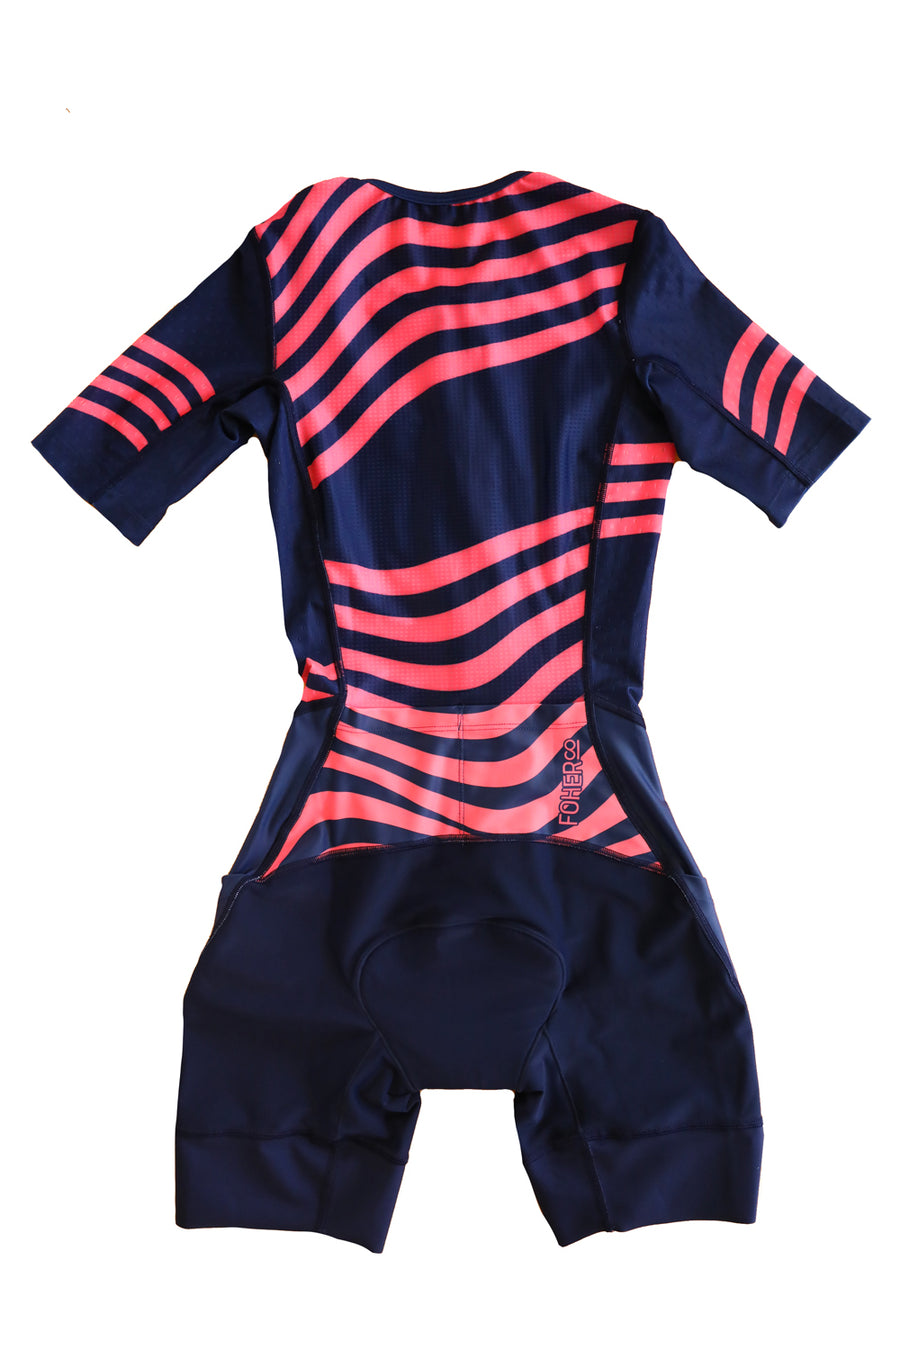 Women's Atlas Aero Sleeved Tri Suit Navy